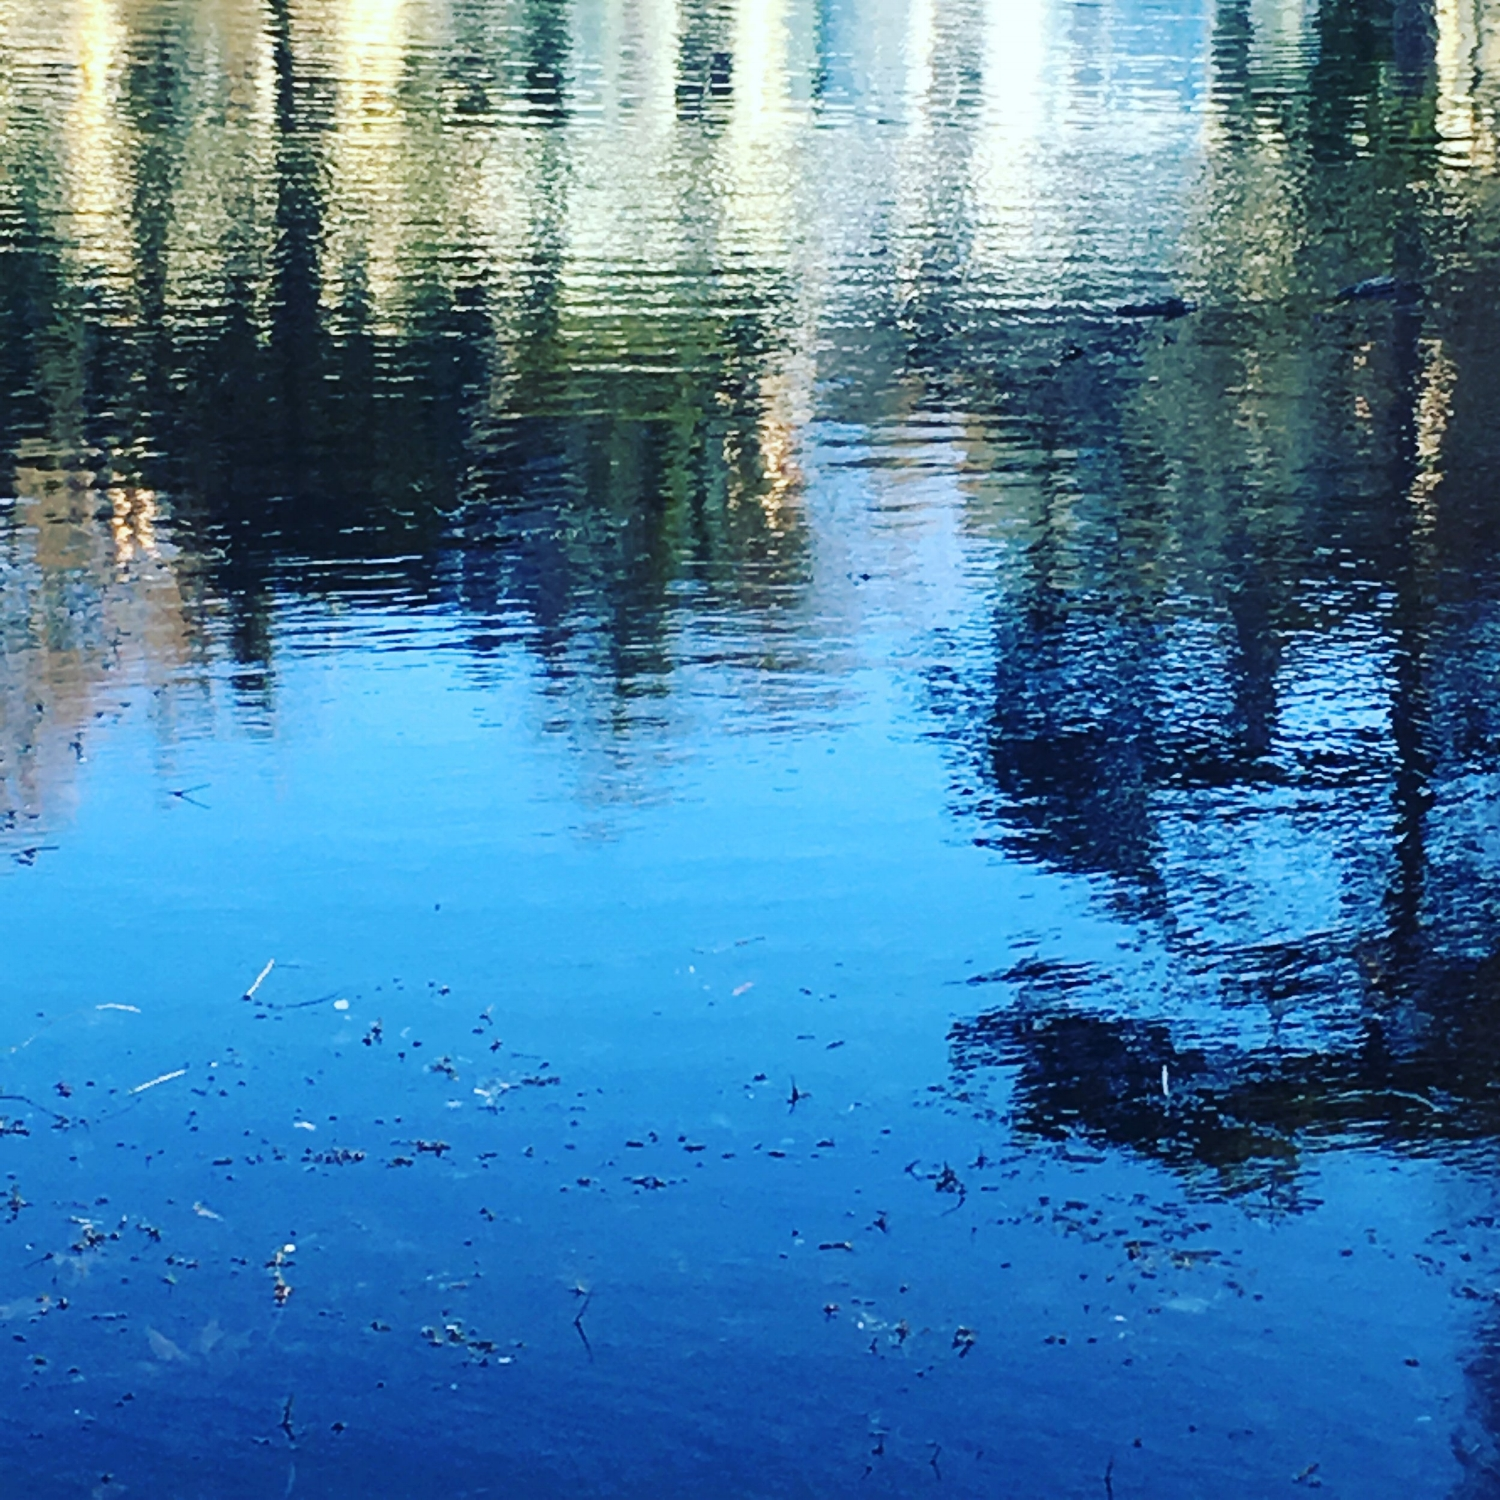 REFLECTIONS ON WATER, MORNING WALK IN ALEXANDRA PARK HASTINGS